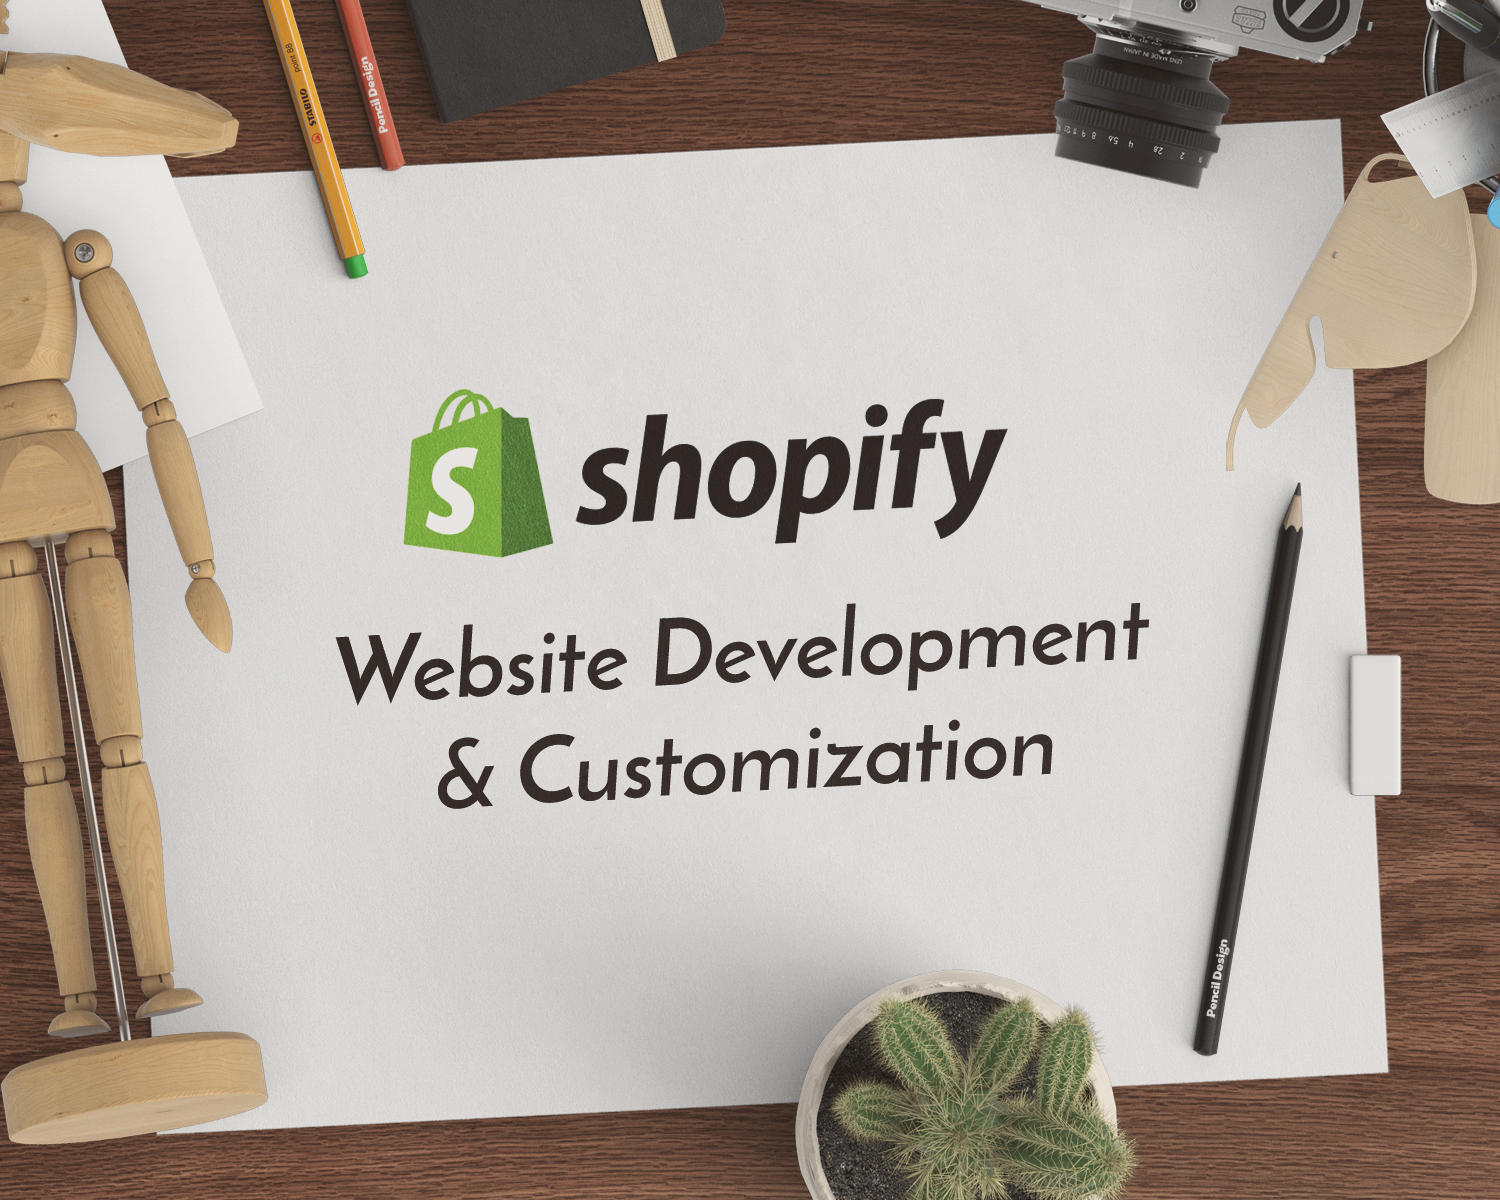 Complete Shopify Website Development / Customization by hasanet - 109752